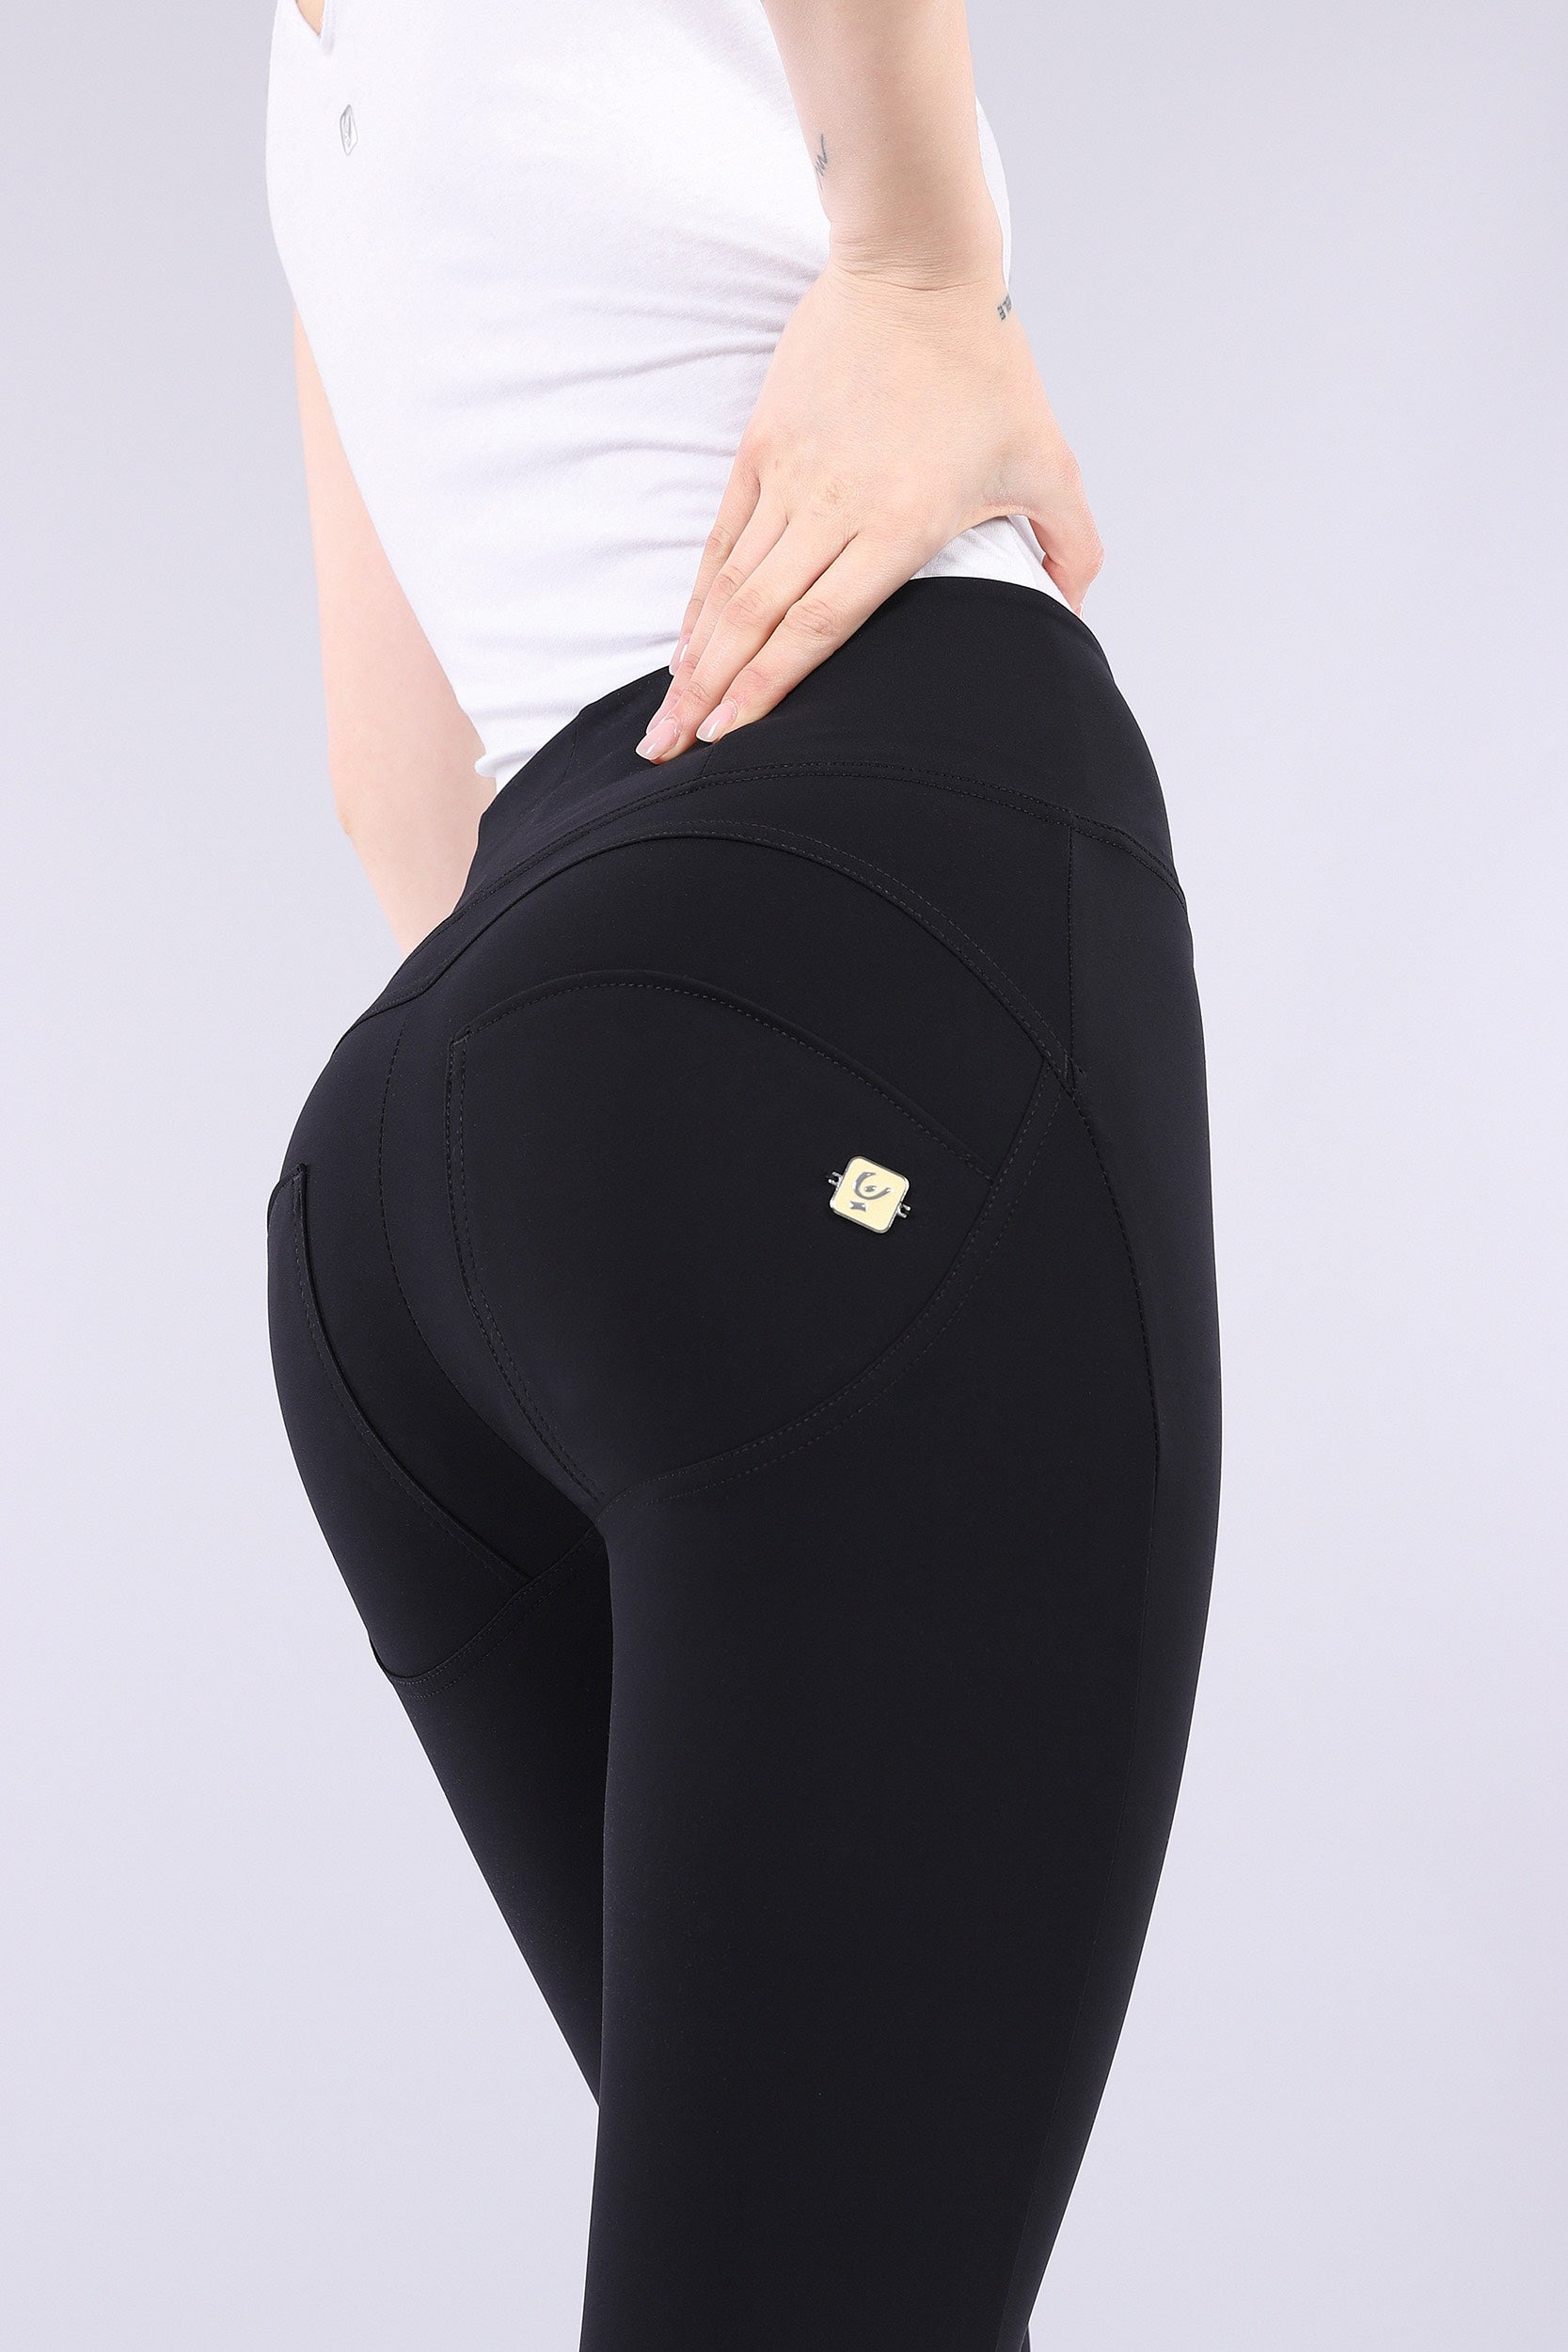 7/8 ANKLE BLACK D.I.W.O.® PRO BEAUTY EFFECT HIGH WAIST